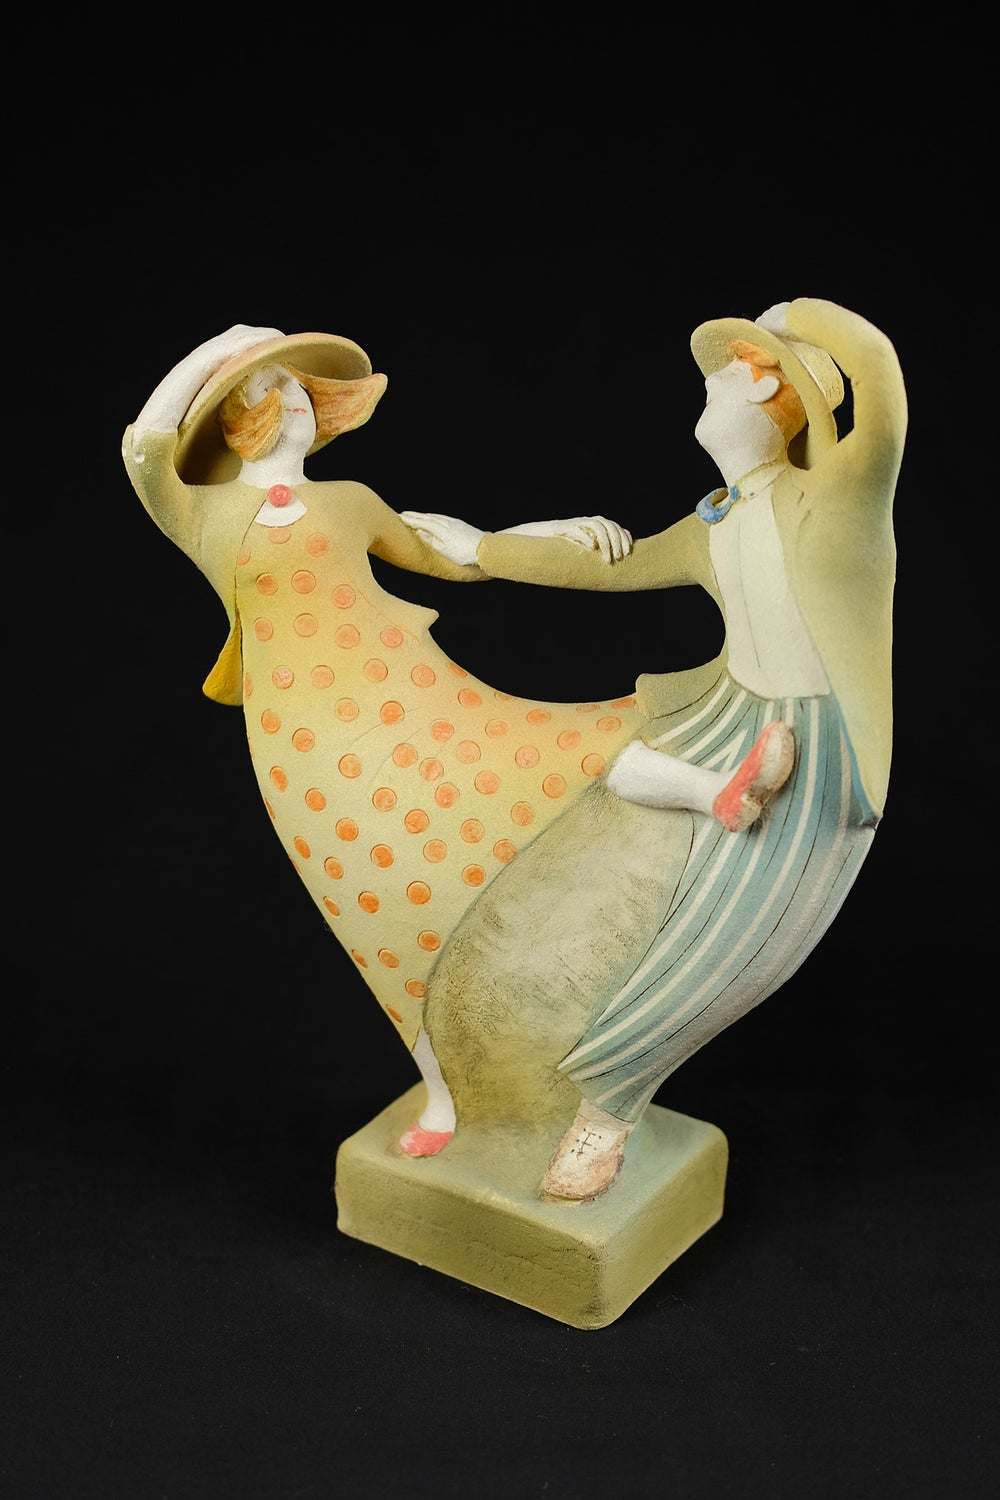 Image of JAN MAYLE 'NIGHT ON THE TOWN' CERAMIC SCULPTURE